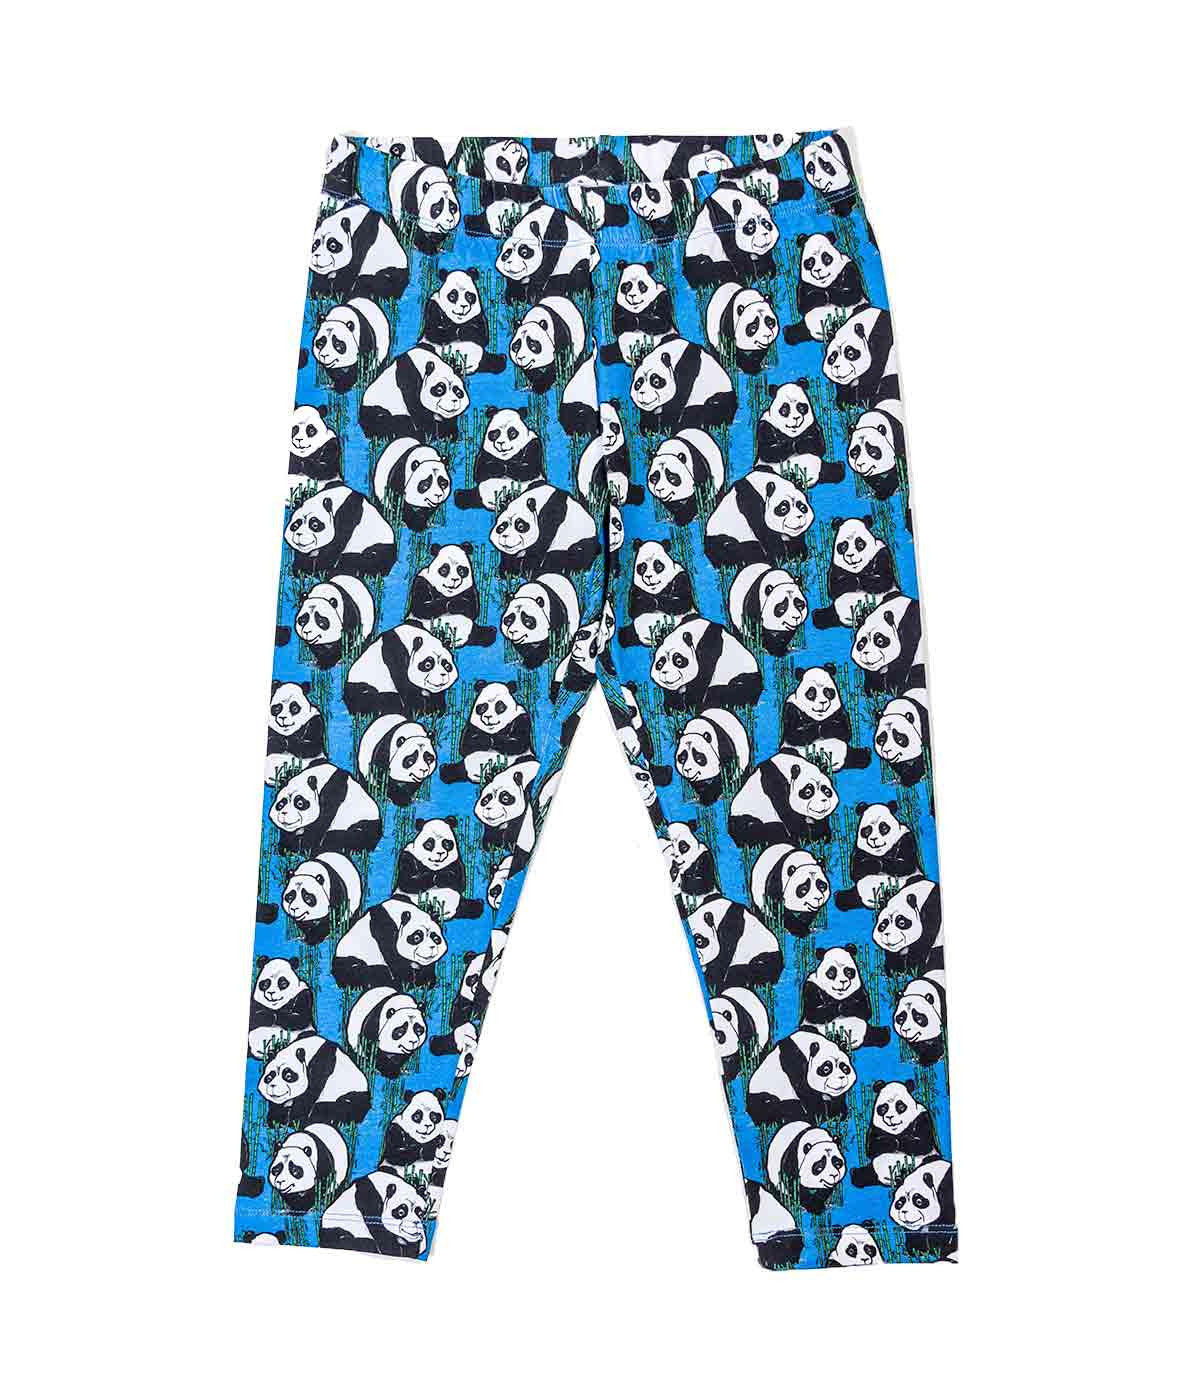 Blue Panda Print Leggings